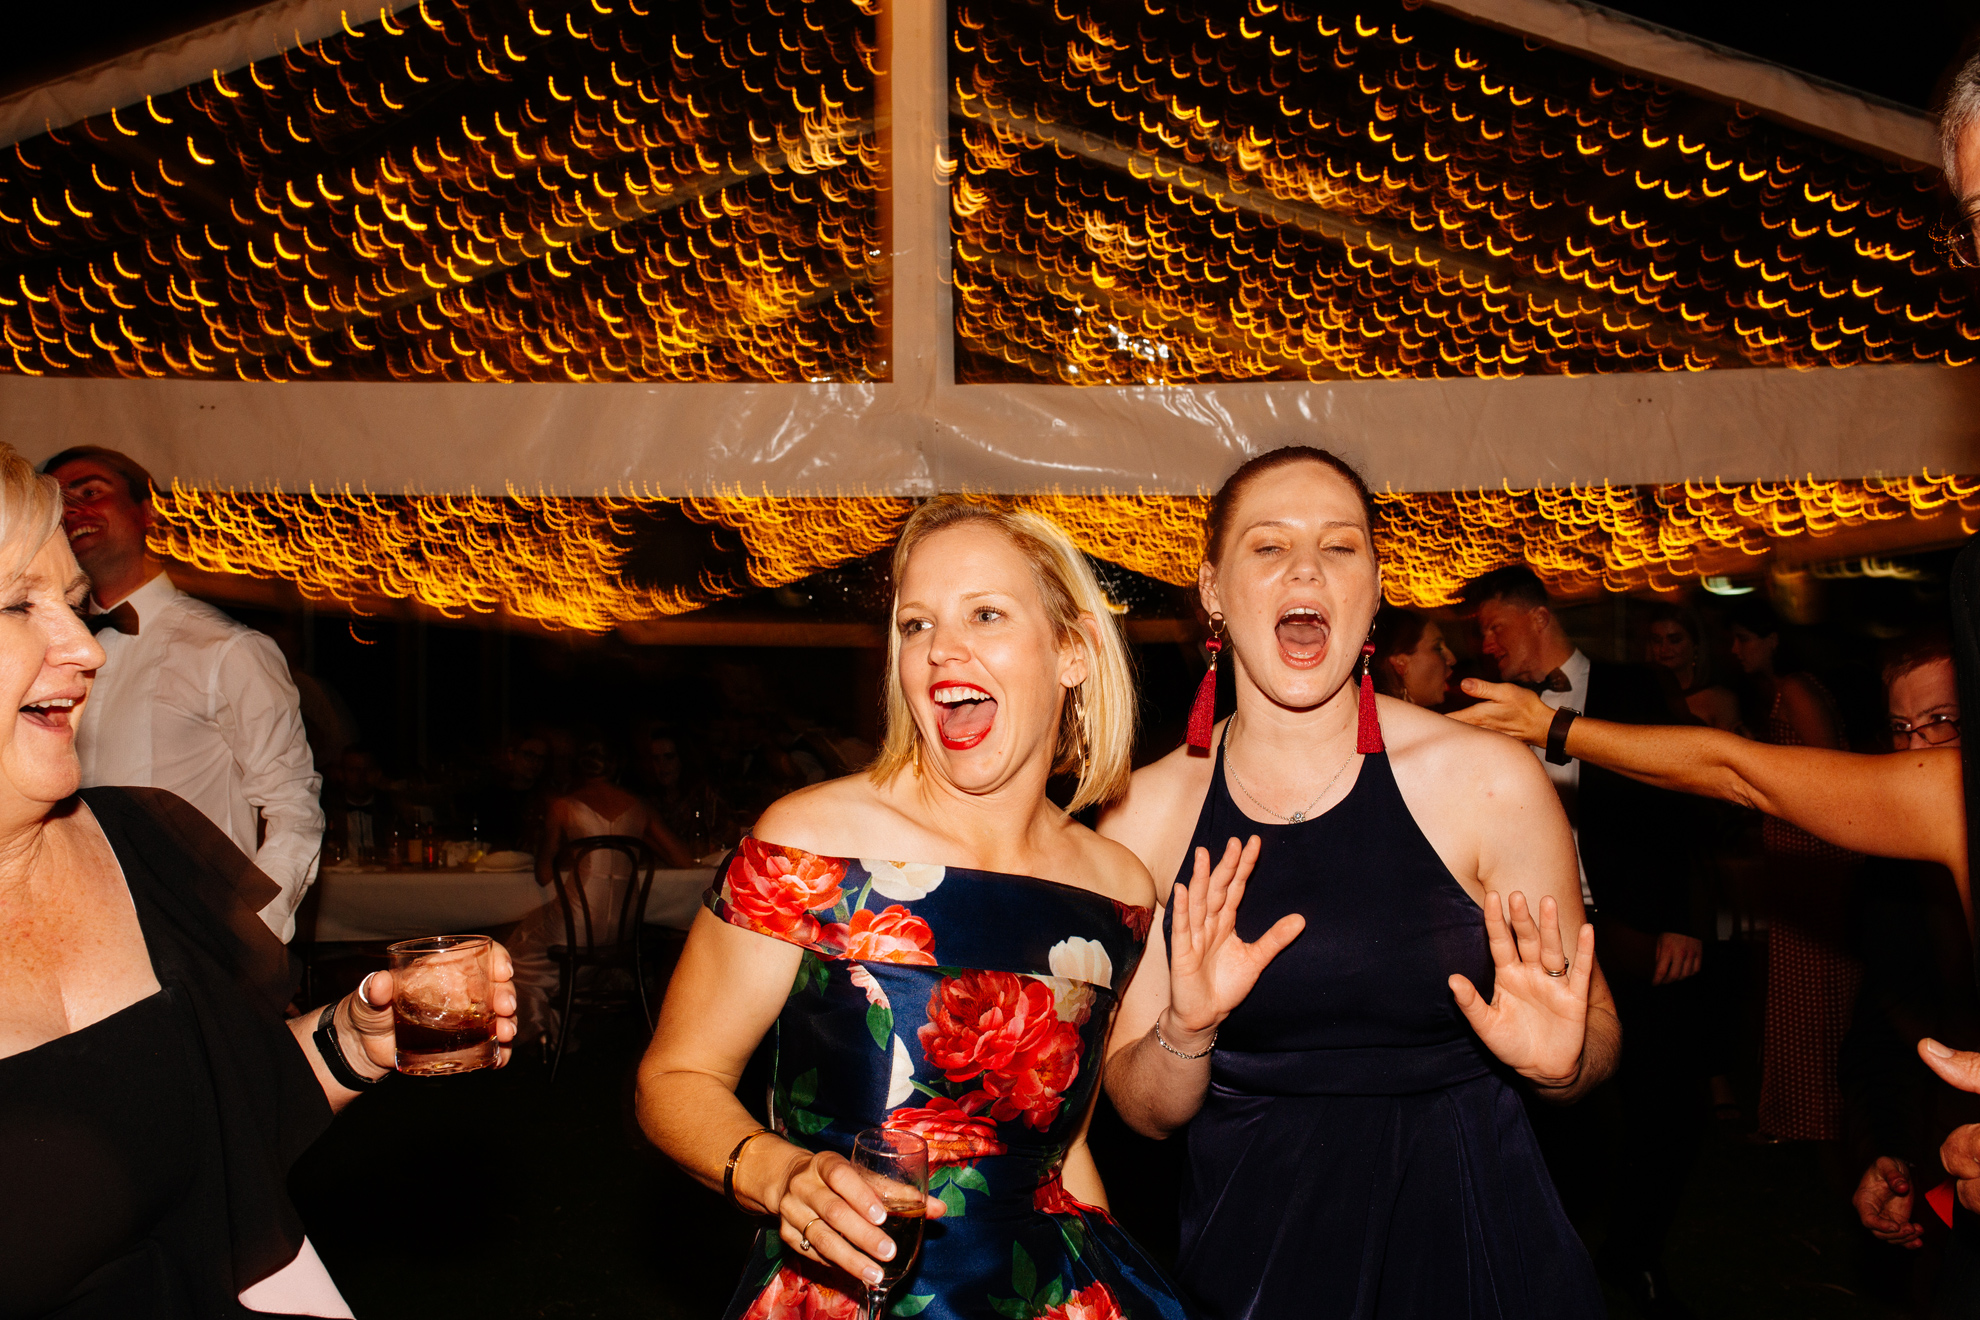 096-Chloe_Joe_Rockhampton_Wedding.jpg